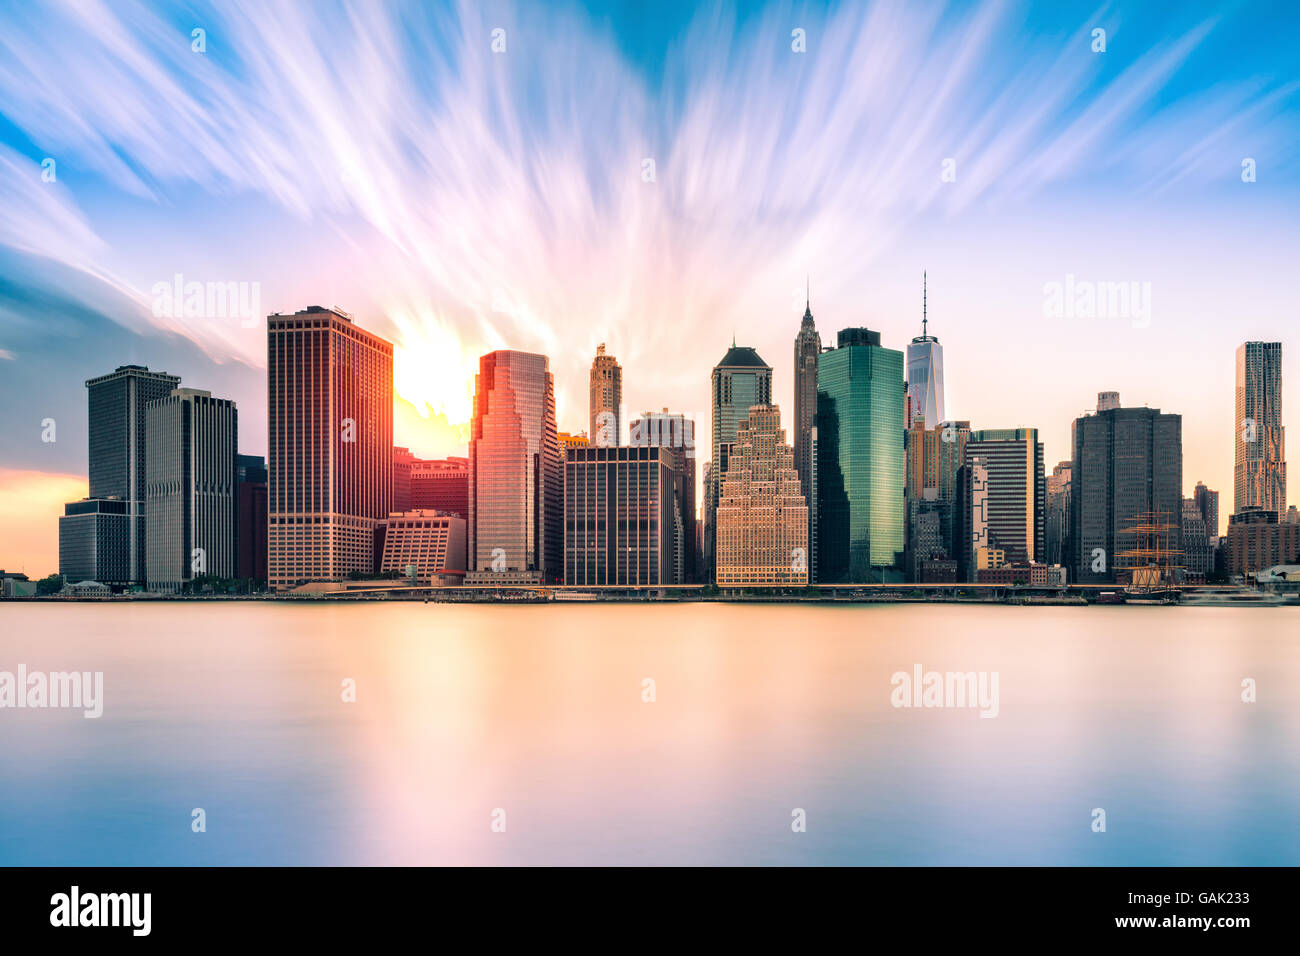 Financial District au coucher du soleil, dans la ville de New York Photo Stock